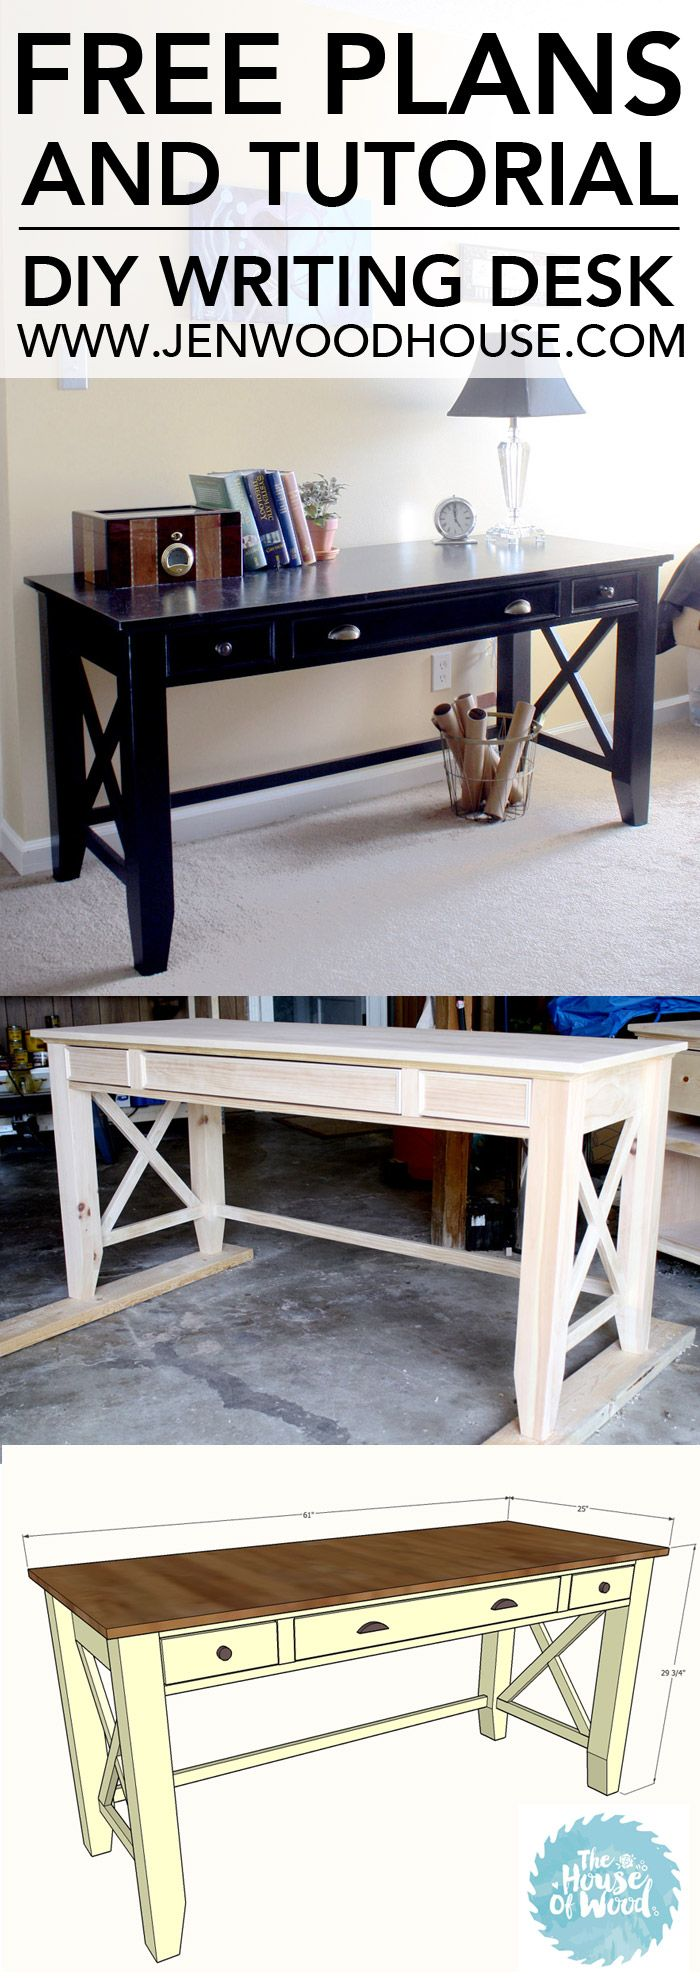 How to build a DIY writing desk